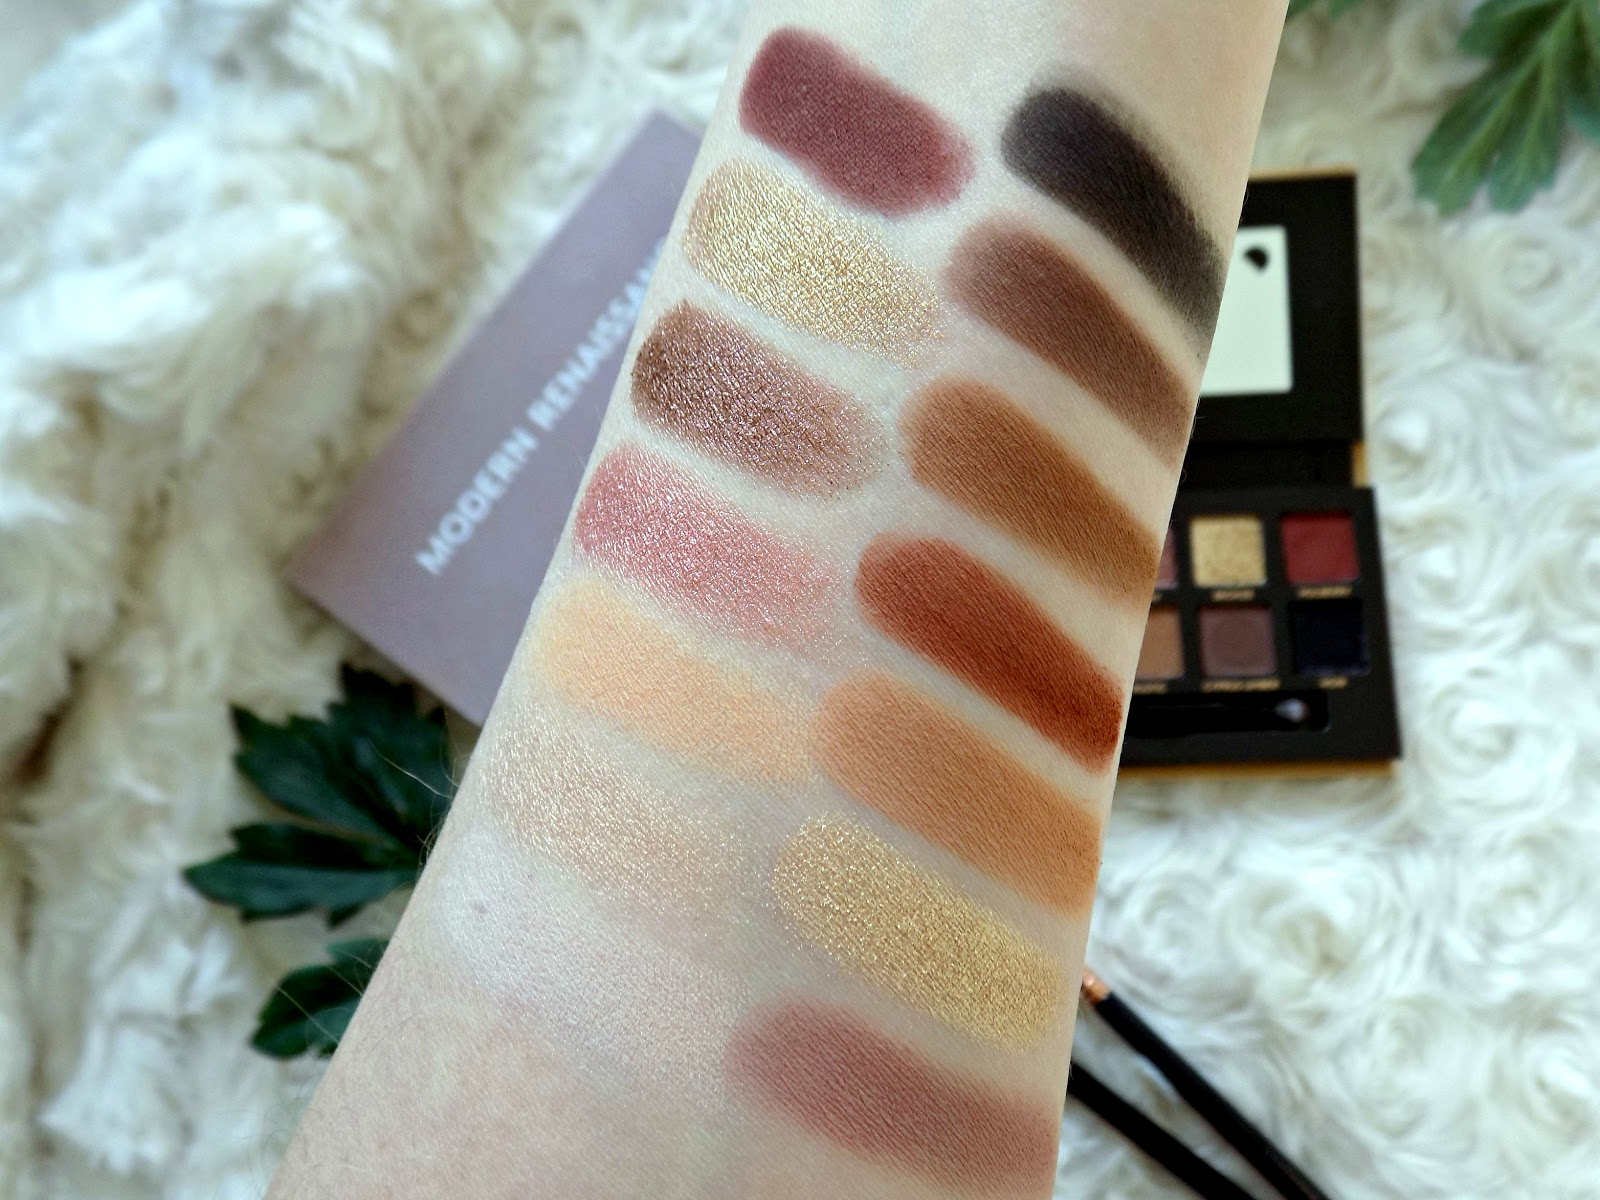 Anastasia Beverly Hills Soft Glam palette swatches